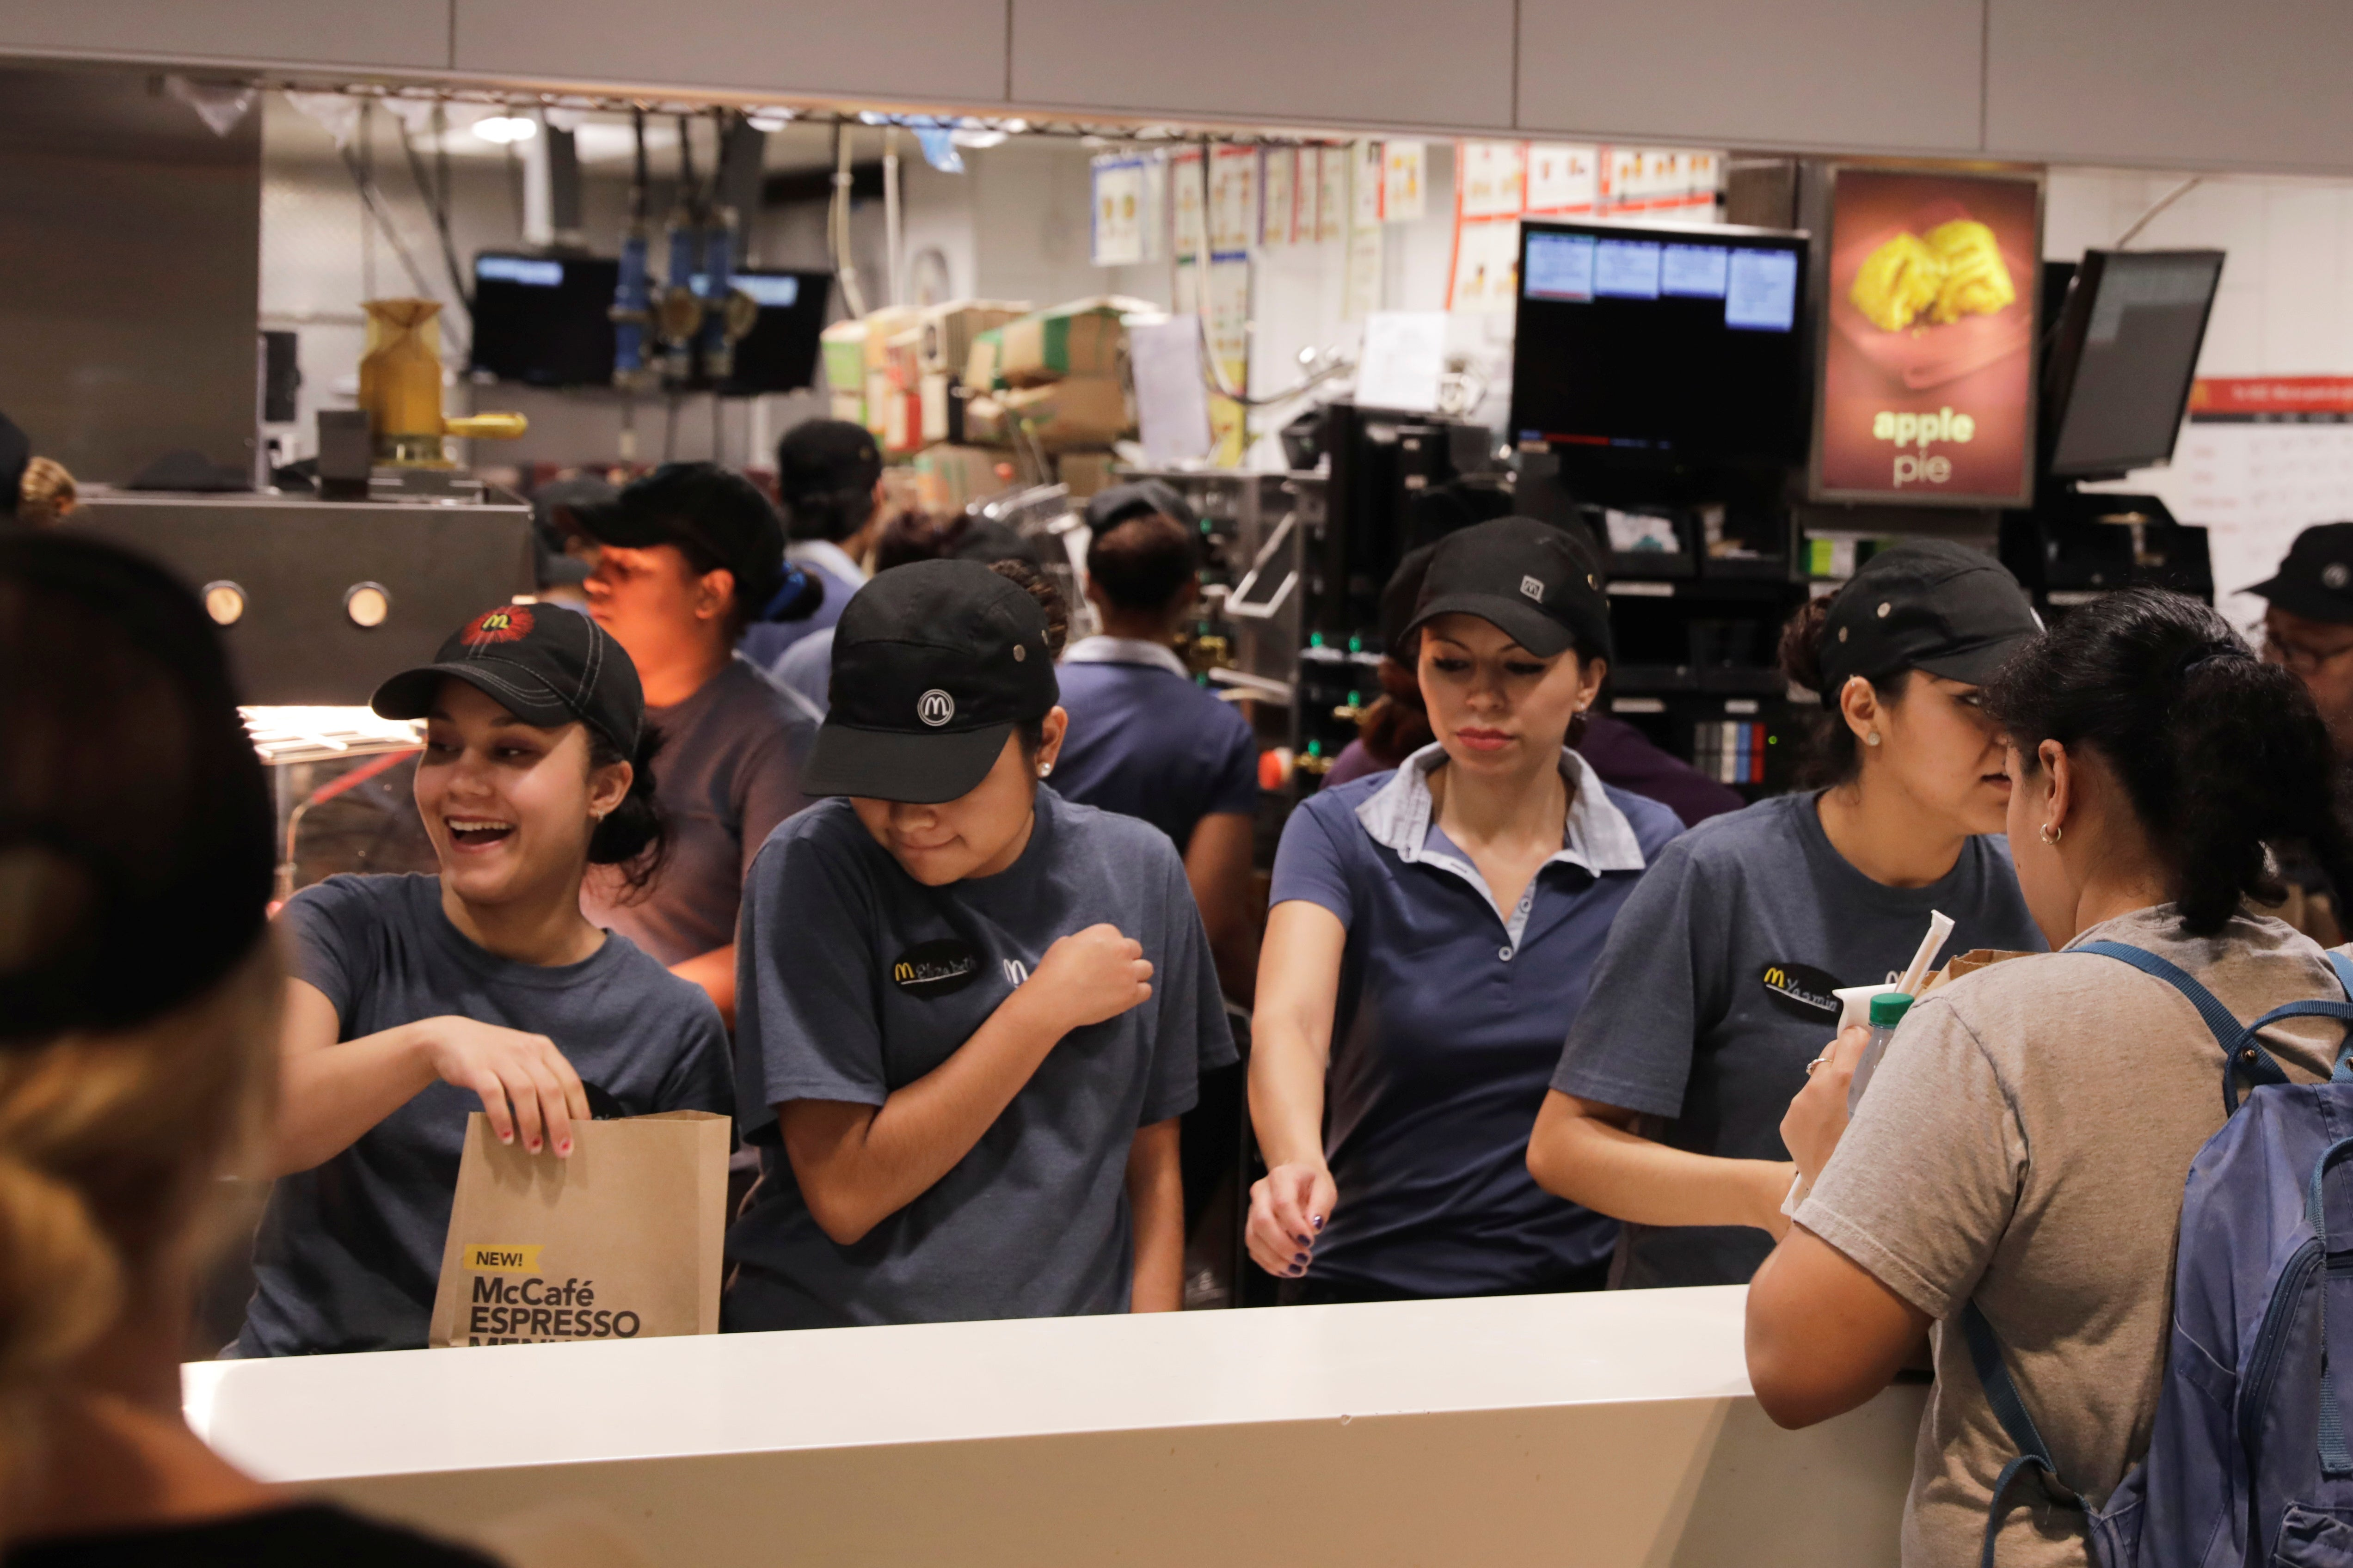 Workers at a McDonalds